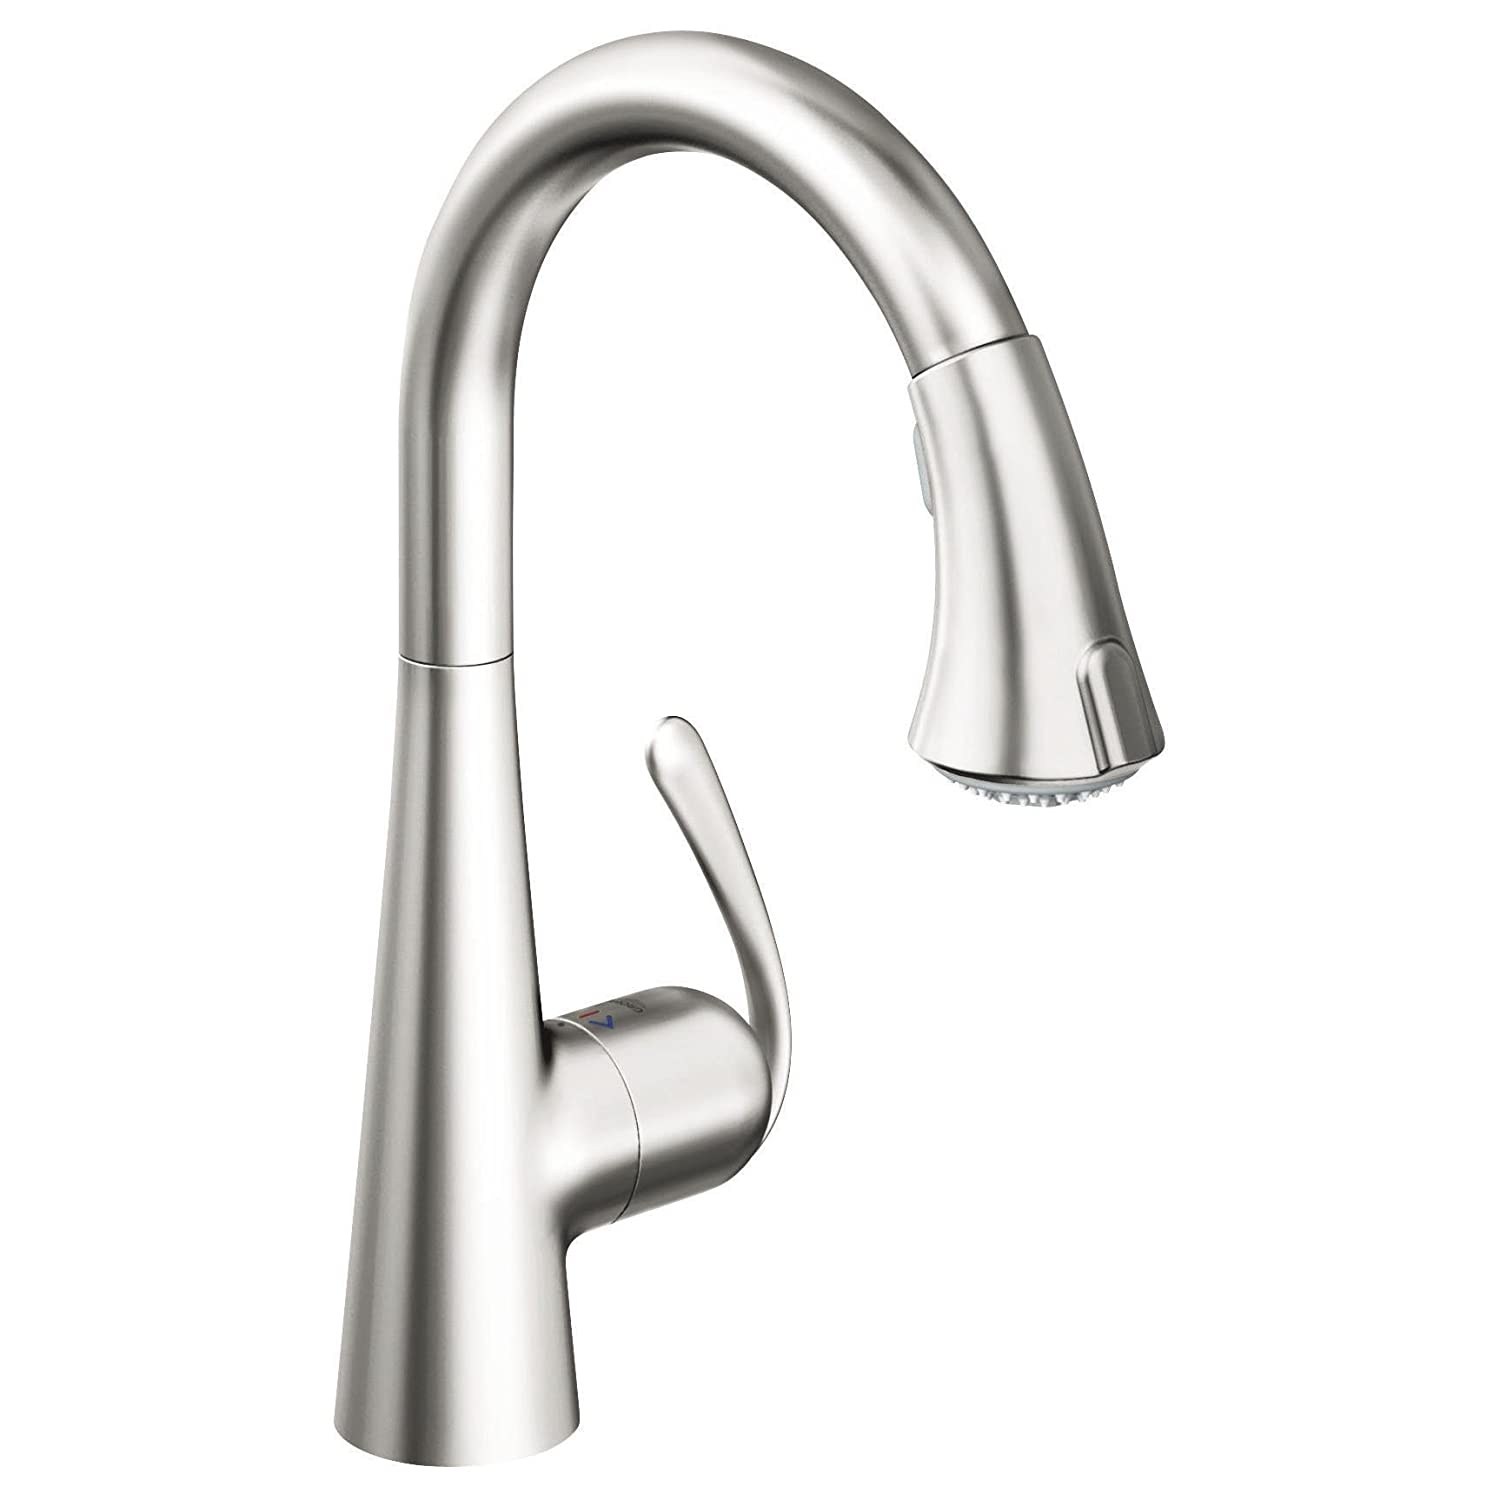 Grohe 32296dc1 Ladylux Café Main Sink Dual Spray Pull Down Kitchen Faucet,  SuperSteel   Touch On Kitchen Sink Faucets   Amazon.com Design Inspirations